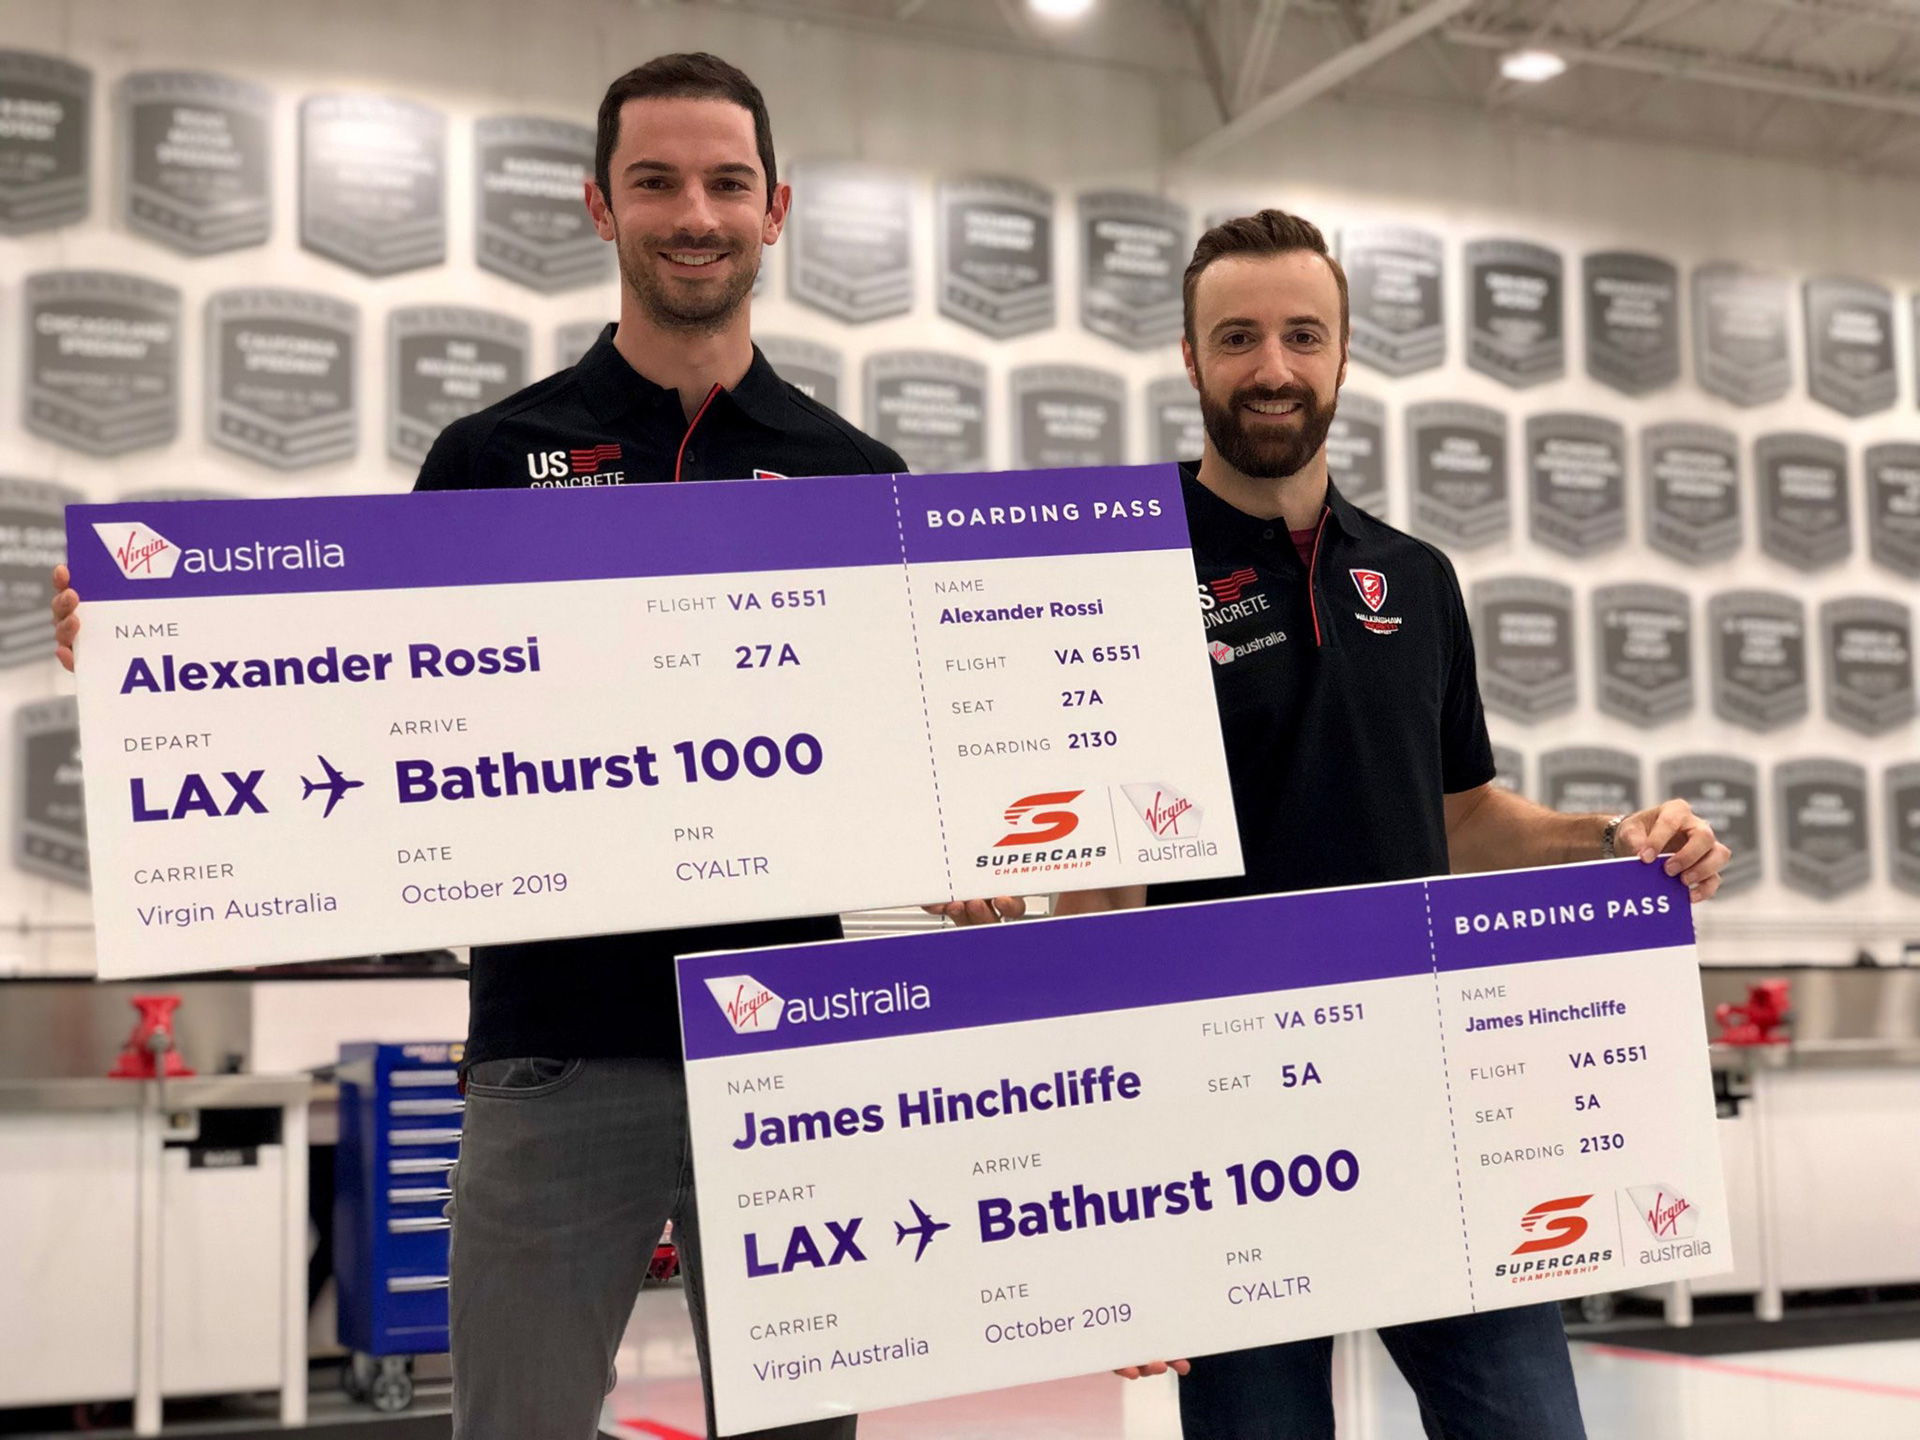 Alexander Rossi and James Hinchcliffe will be boarding the Virgin Australia flight to Sydney.